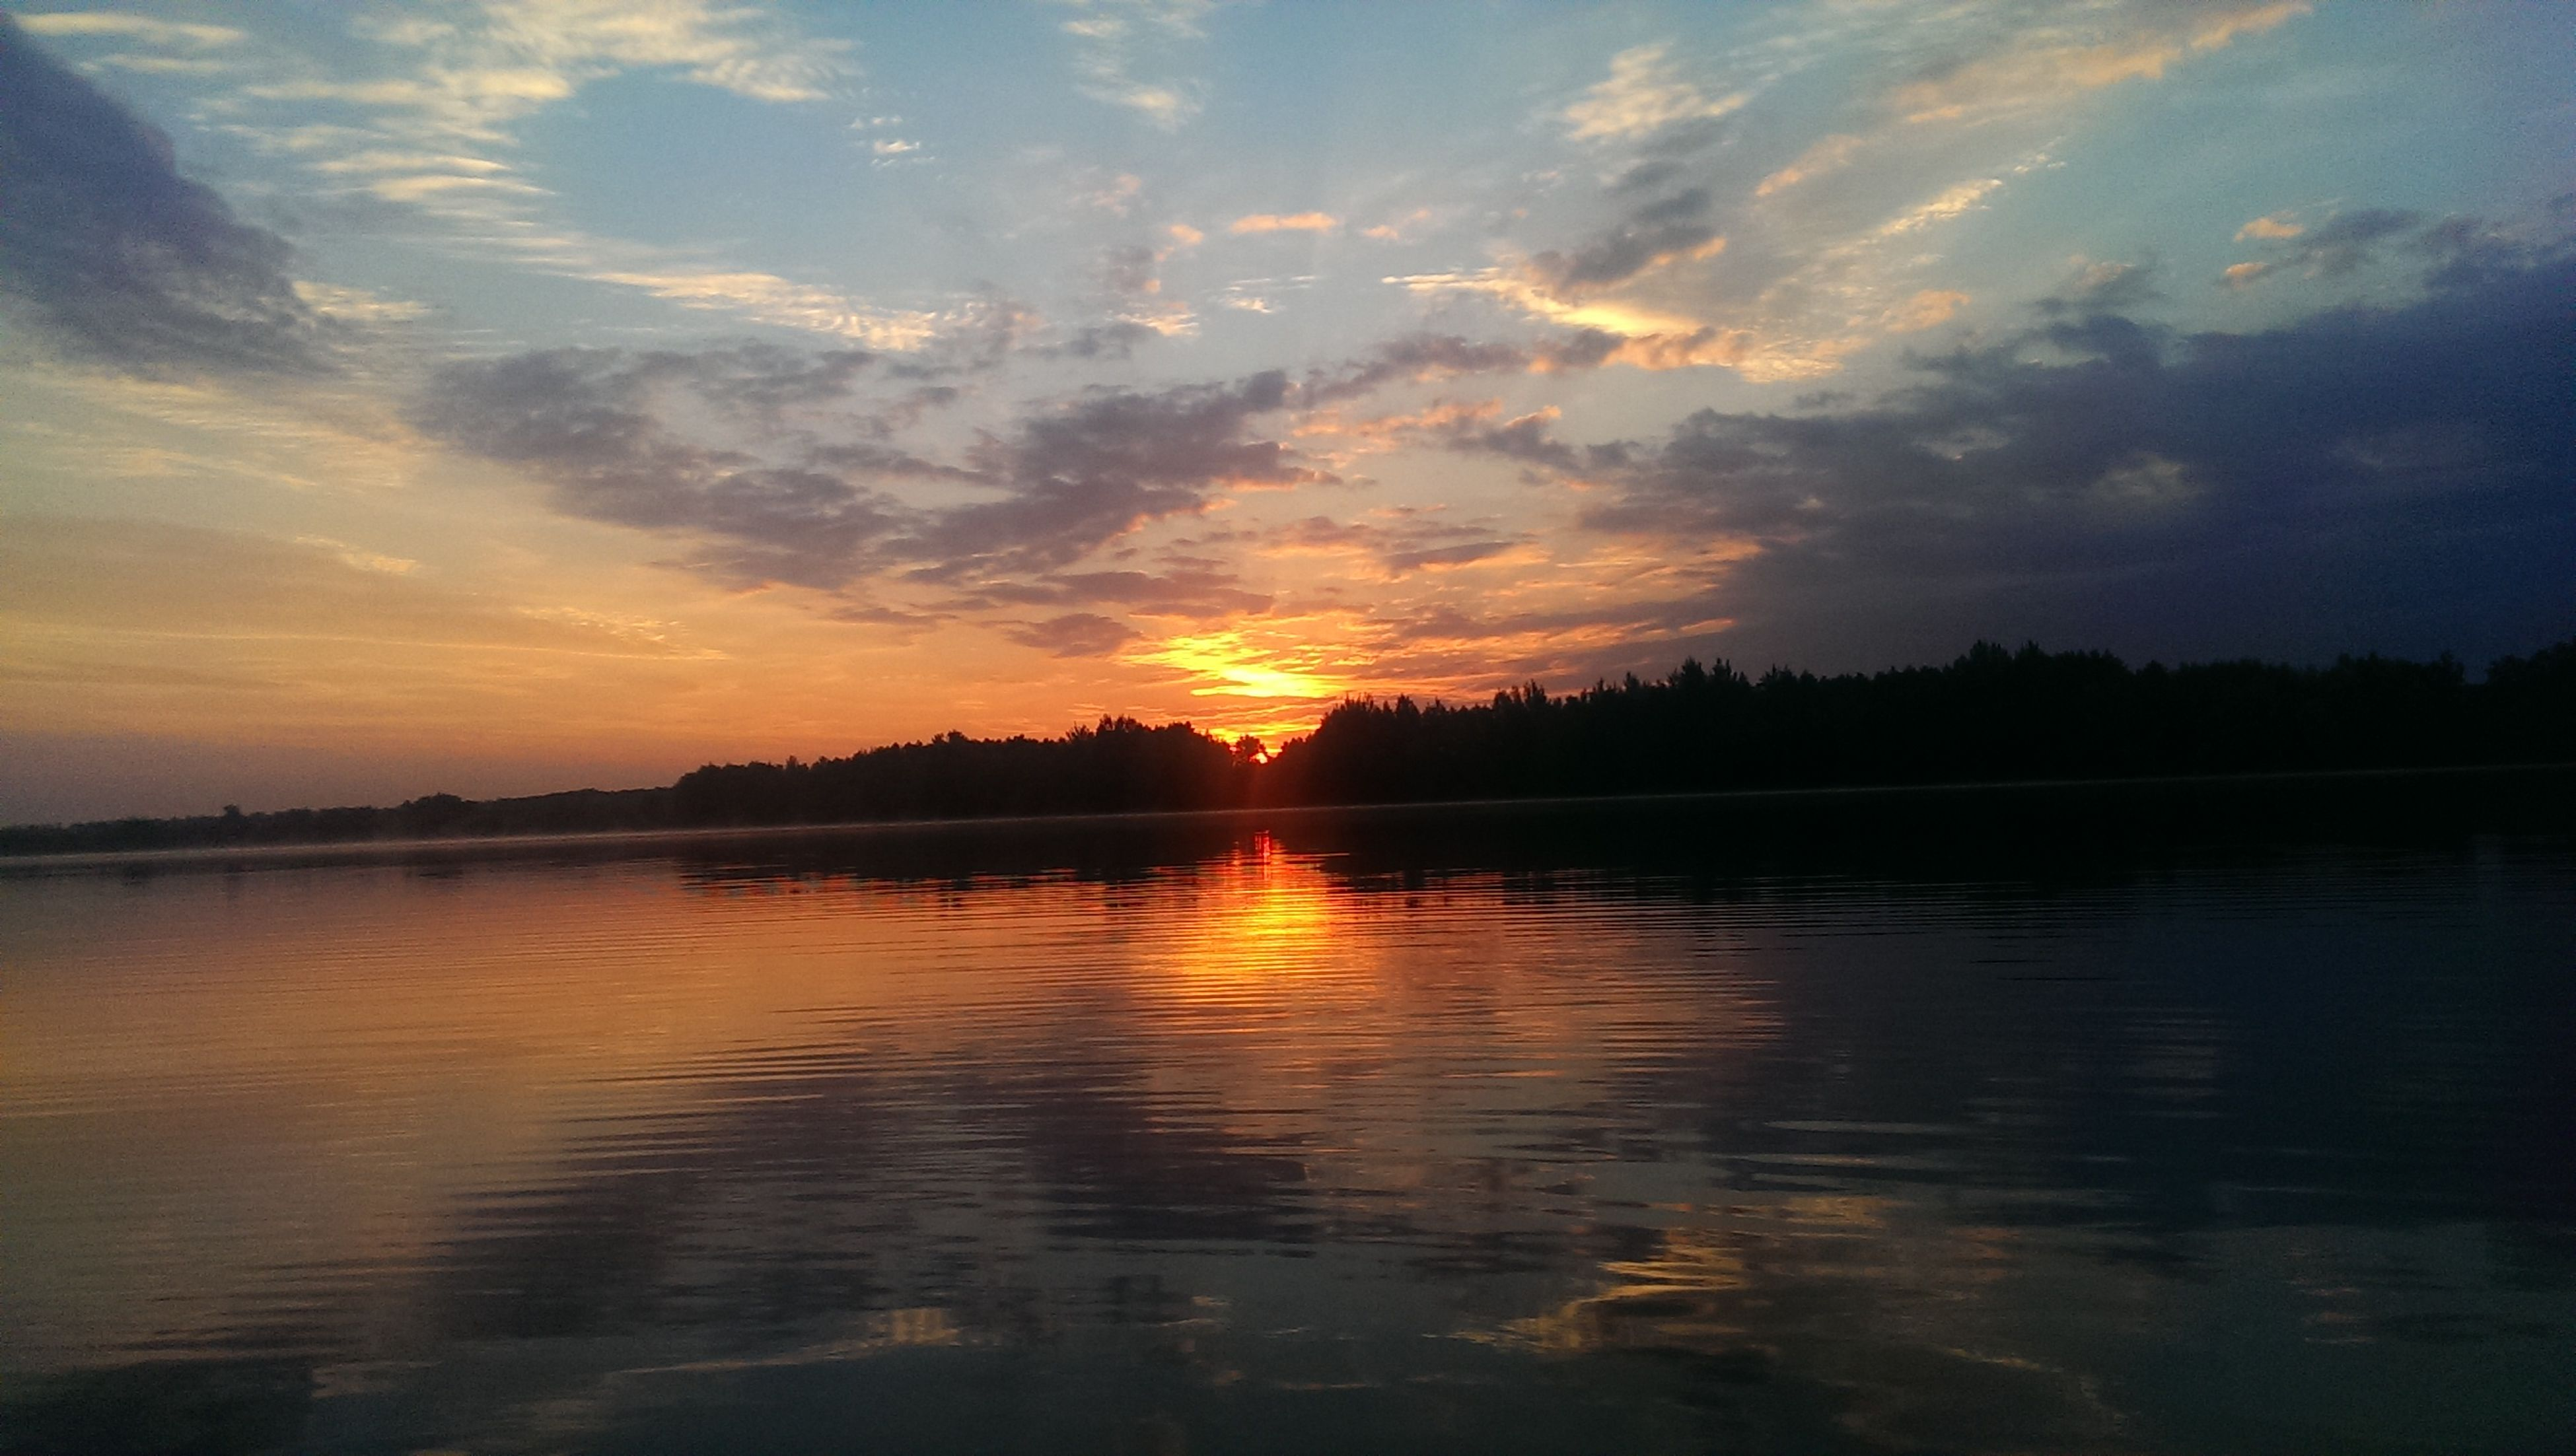 sunset, water, scenics, tranquil scene, lake, reflection, tranquility, beauty in nature, waterfront, orange color, calm, idyllic, sky, nature, sun, cloud - sky, cloud, dramatic sky, majestic, atmospheric mood, romantic sky, atmosphere, outdoors, moody sky, non-urban scene, no people, sea, vibrant color, standing water